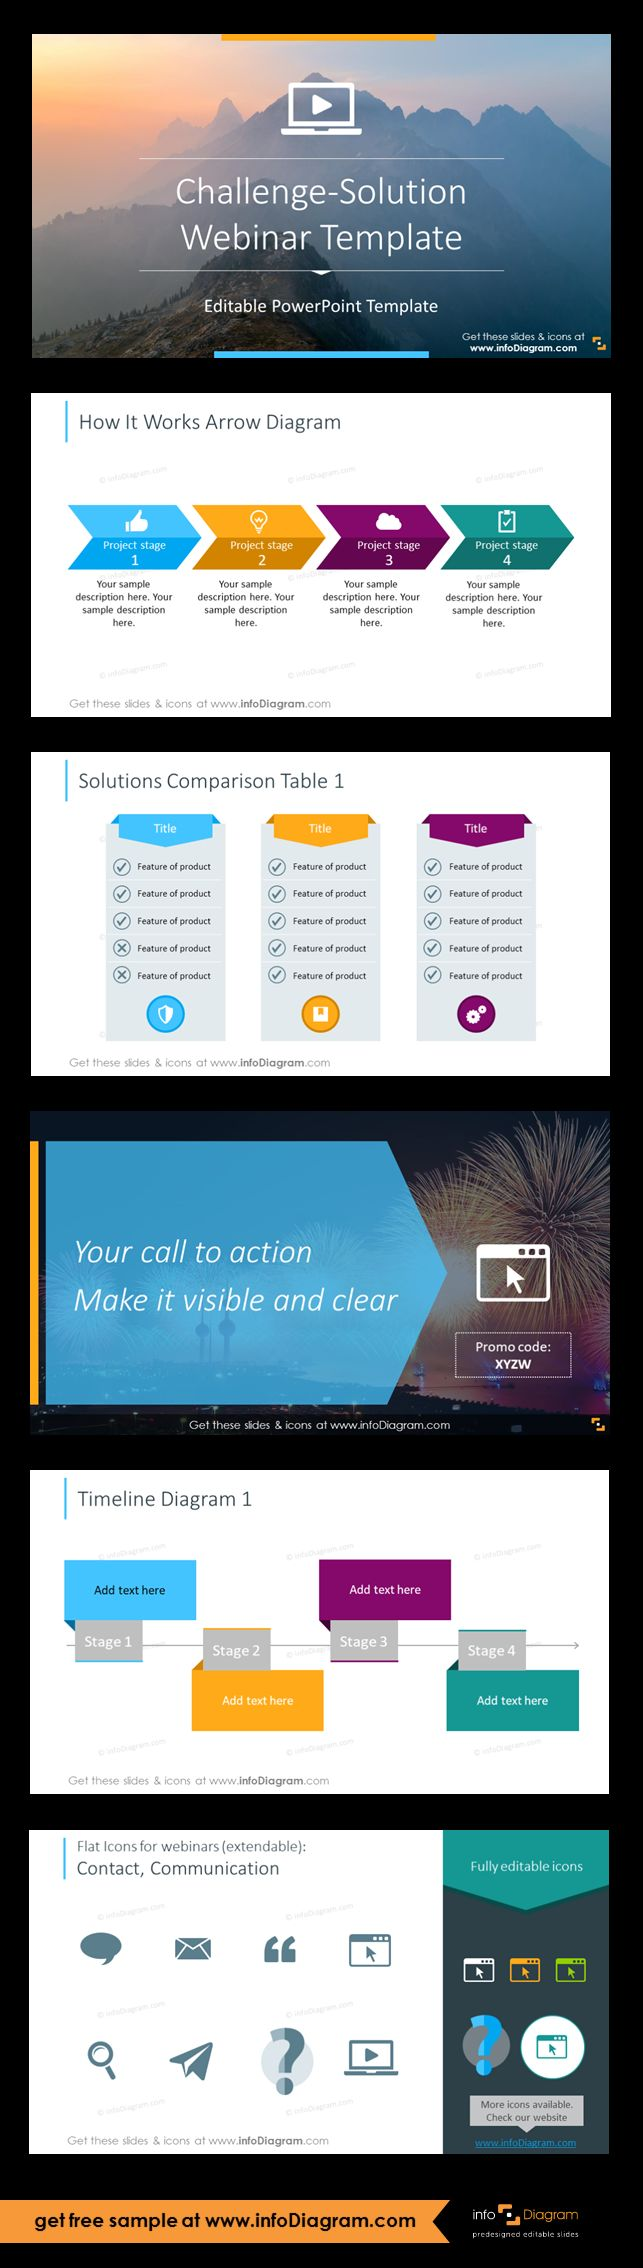 This PowerPoint Template contains predesigned webinar content examples, editable graphics and slide layouts for preparing professional webinar course. The template can be used to prepare webinar presentation for any webconferencing software. You can add a timeline illustrating how your solution works, what stages it has. Optionally use a table for comparing various solutions. Don't forget to close the webinar talk with clear Call to Action. Illustrate webinar with catchy icons.